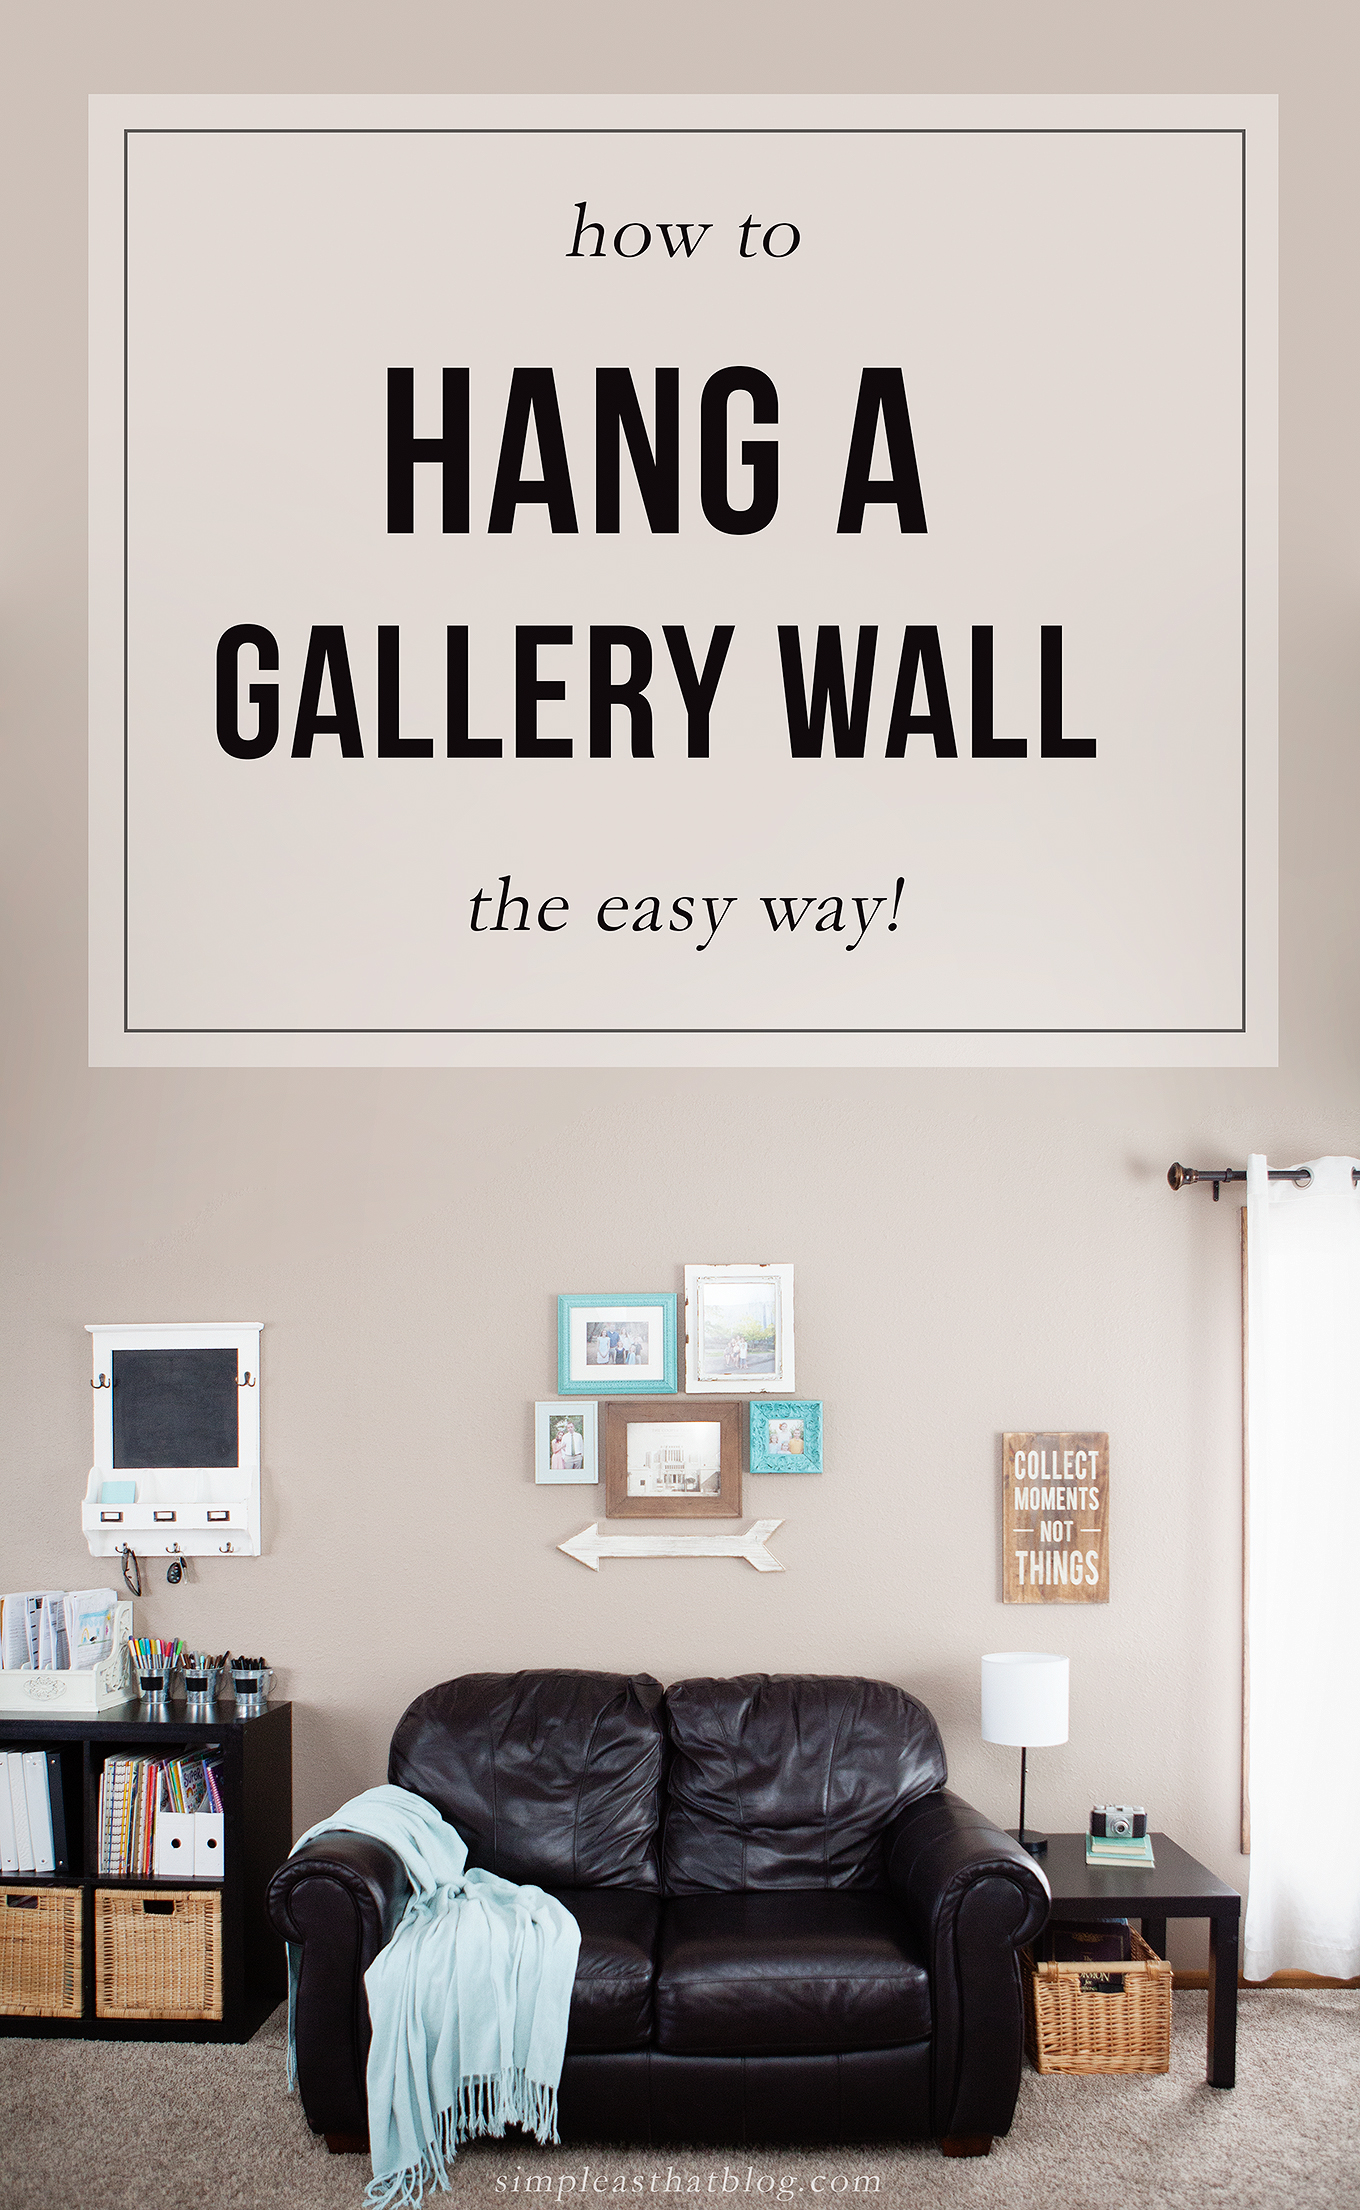 Have You Always Wanted To Create A Beautiful Gallery Wall Display But Didn T Quite